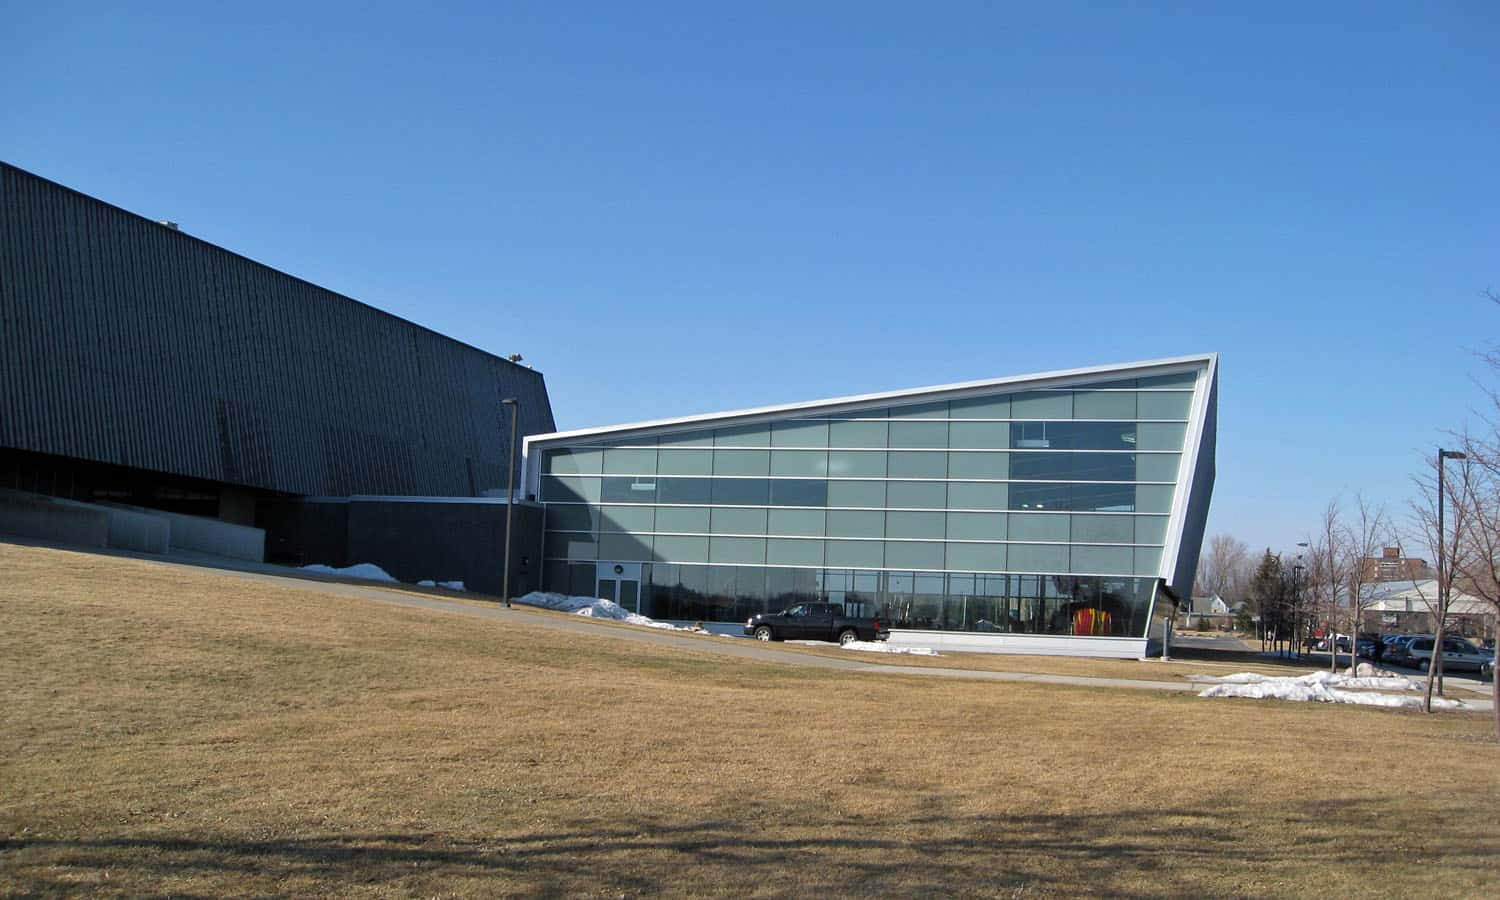 South elevation of the aquatic centre addition